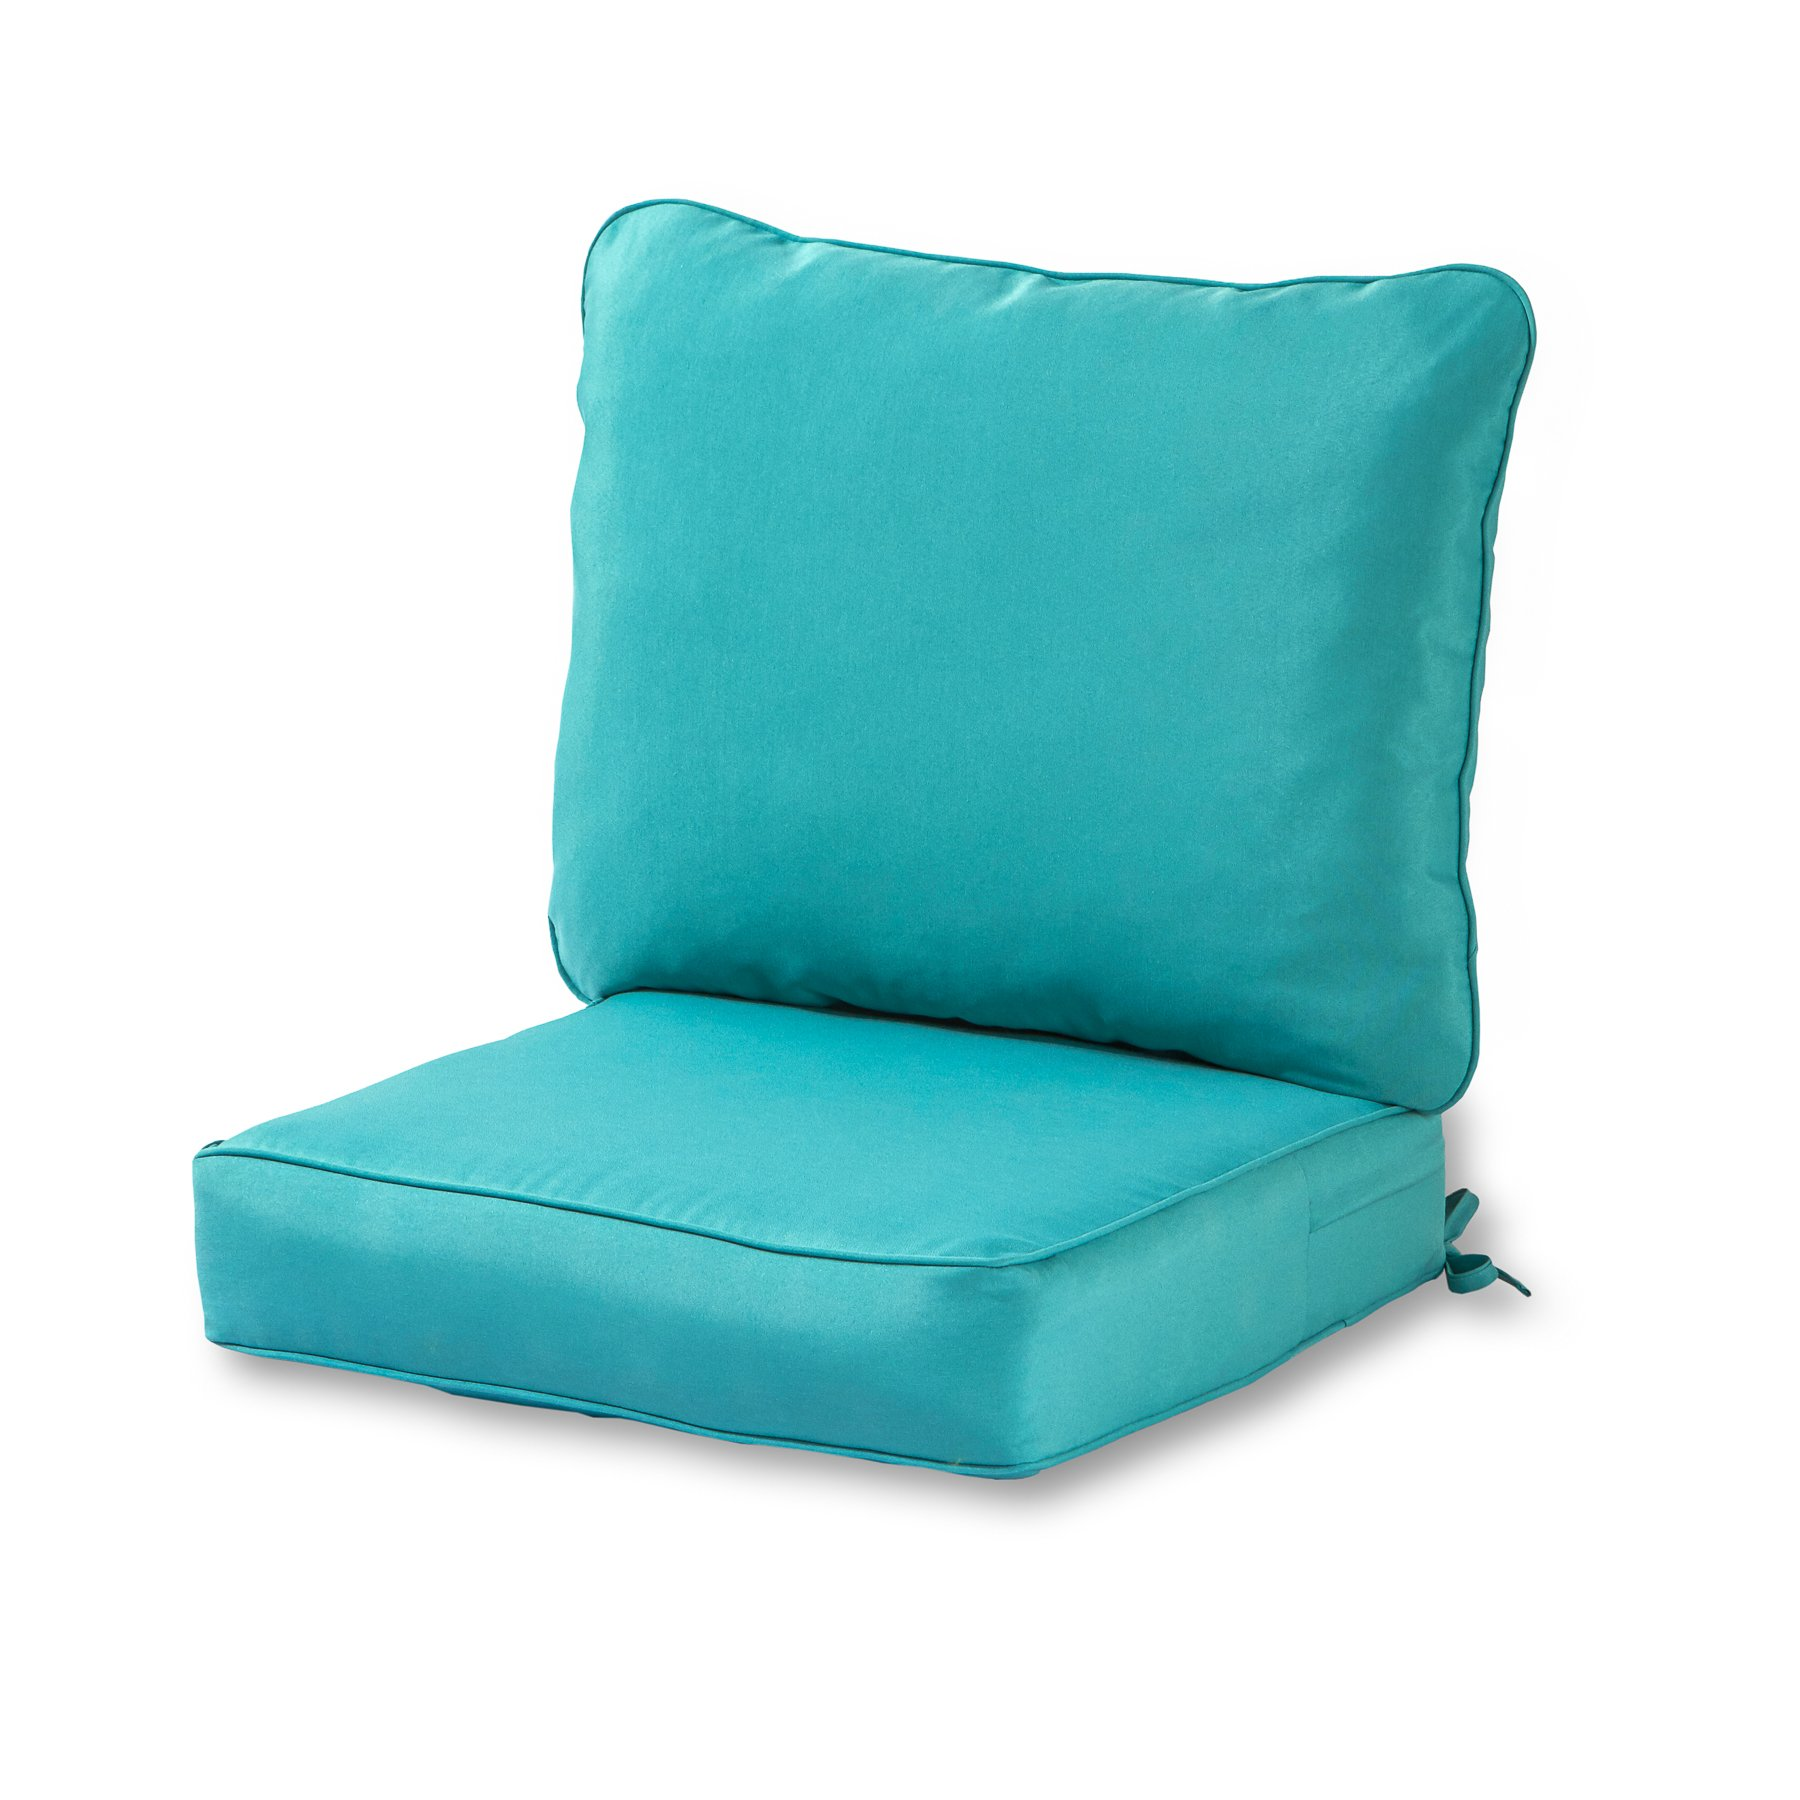 Greendale Home Fashions Deep Seat Cushion Set, Teal